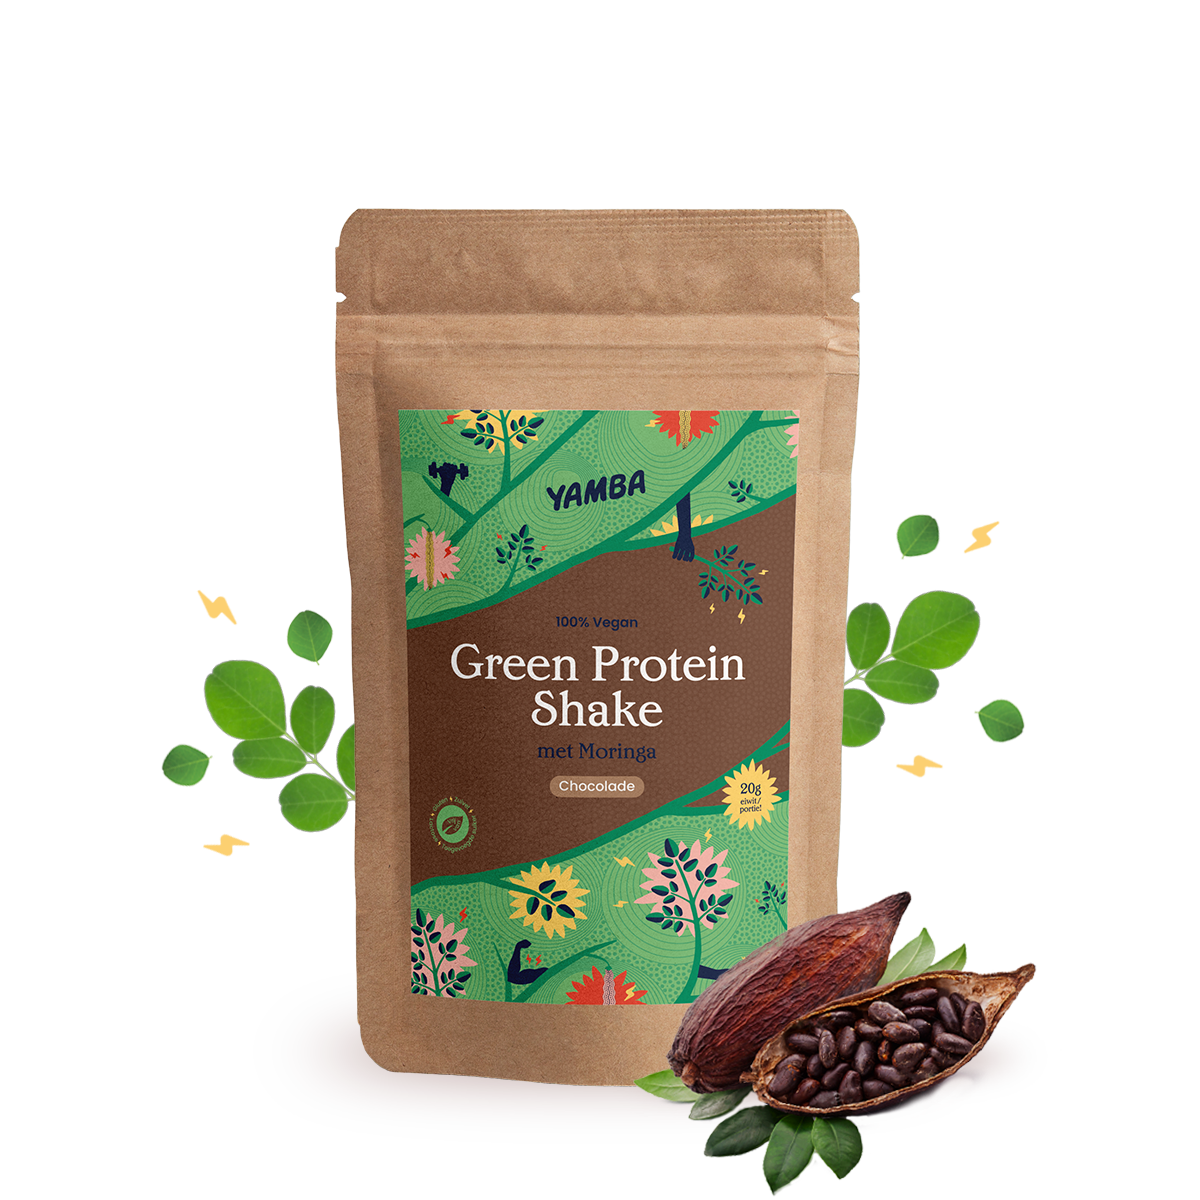 Green Protein Shake Chocolade (1kg) packaging